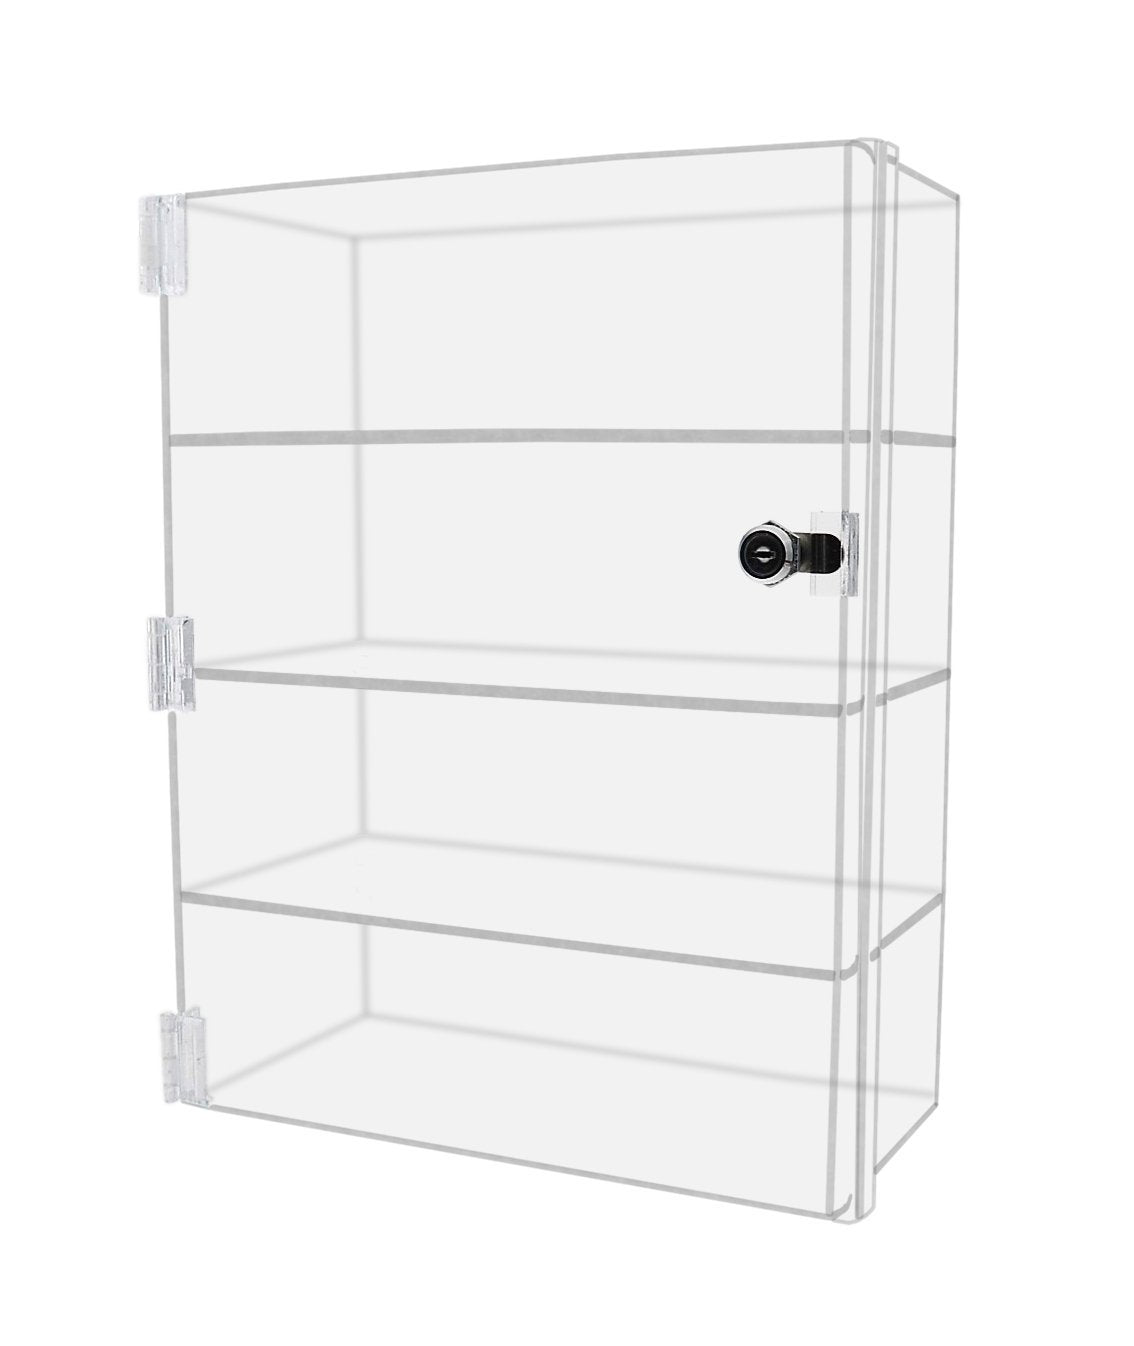 Amazon best marketing holders acrylic lucite countertop display case showcase box cabinet 12w x 7d x 16h bakery pastry bread cabint or collectibles